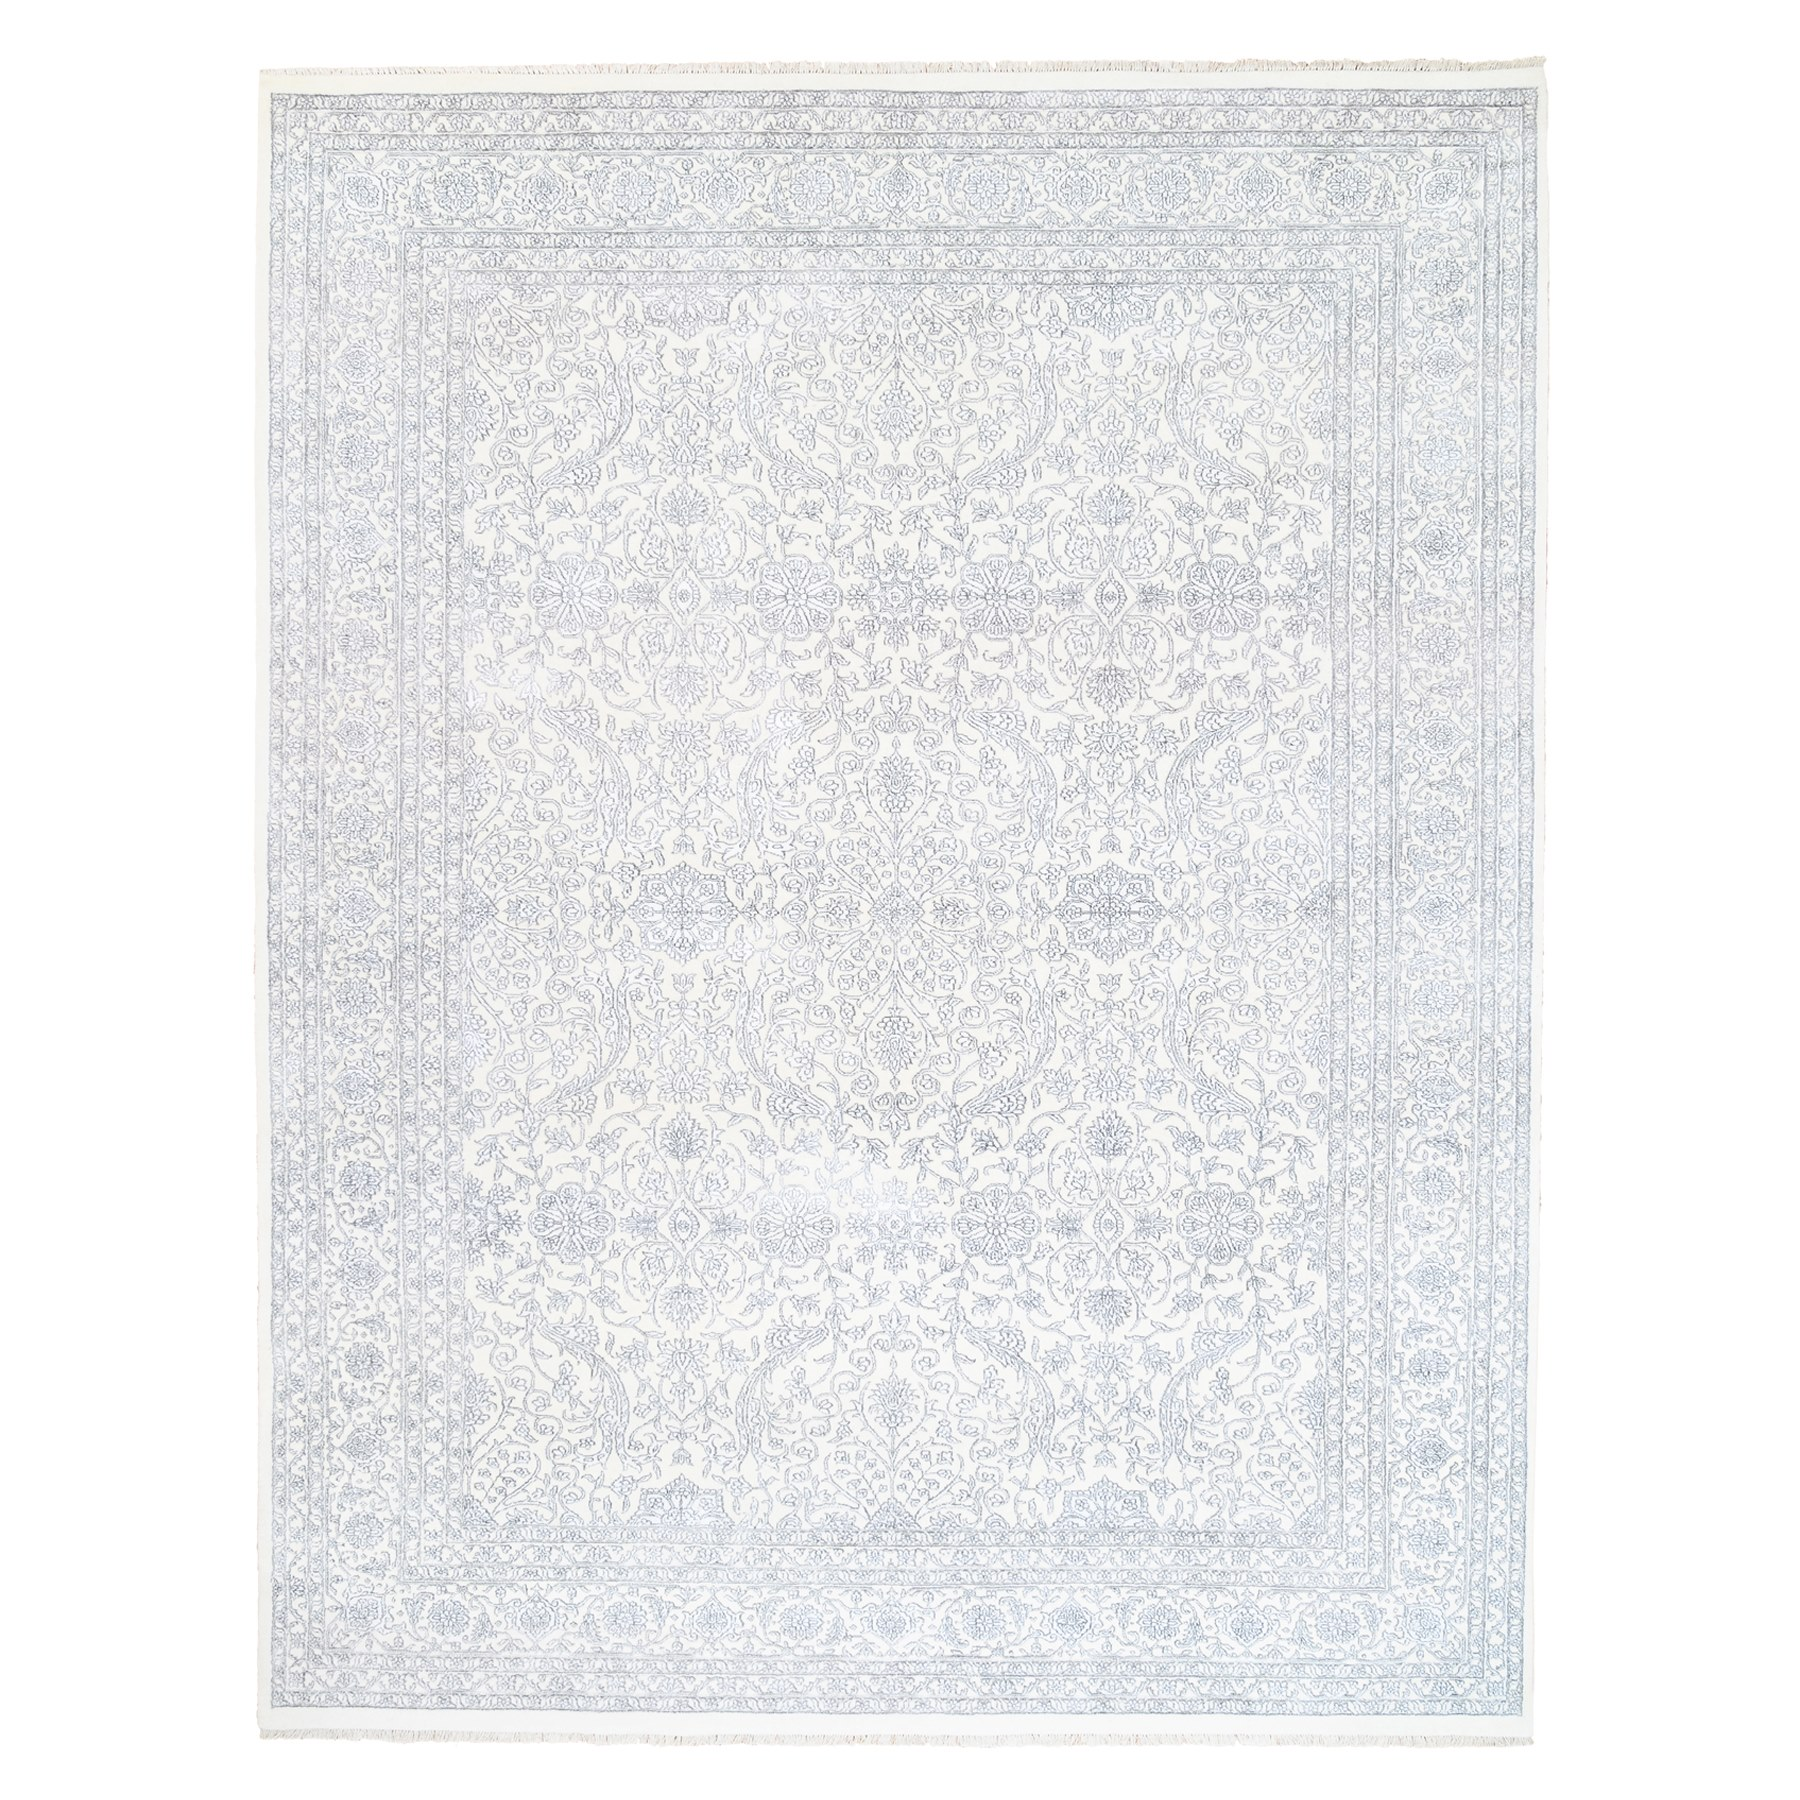 Pirniakan Collection Hand Knotted Ivory Rug No: 1124496